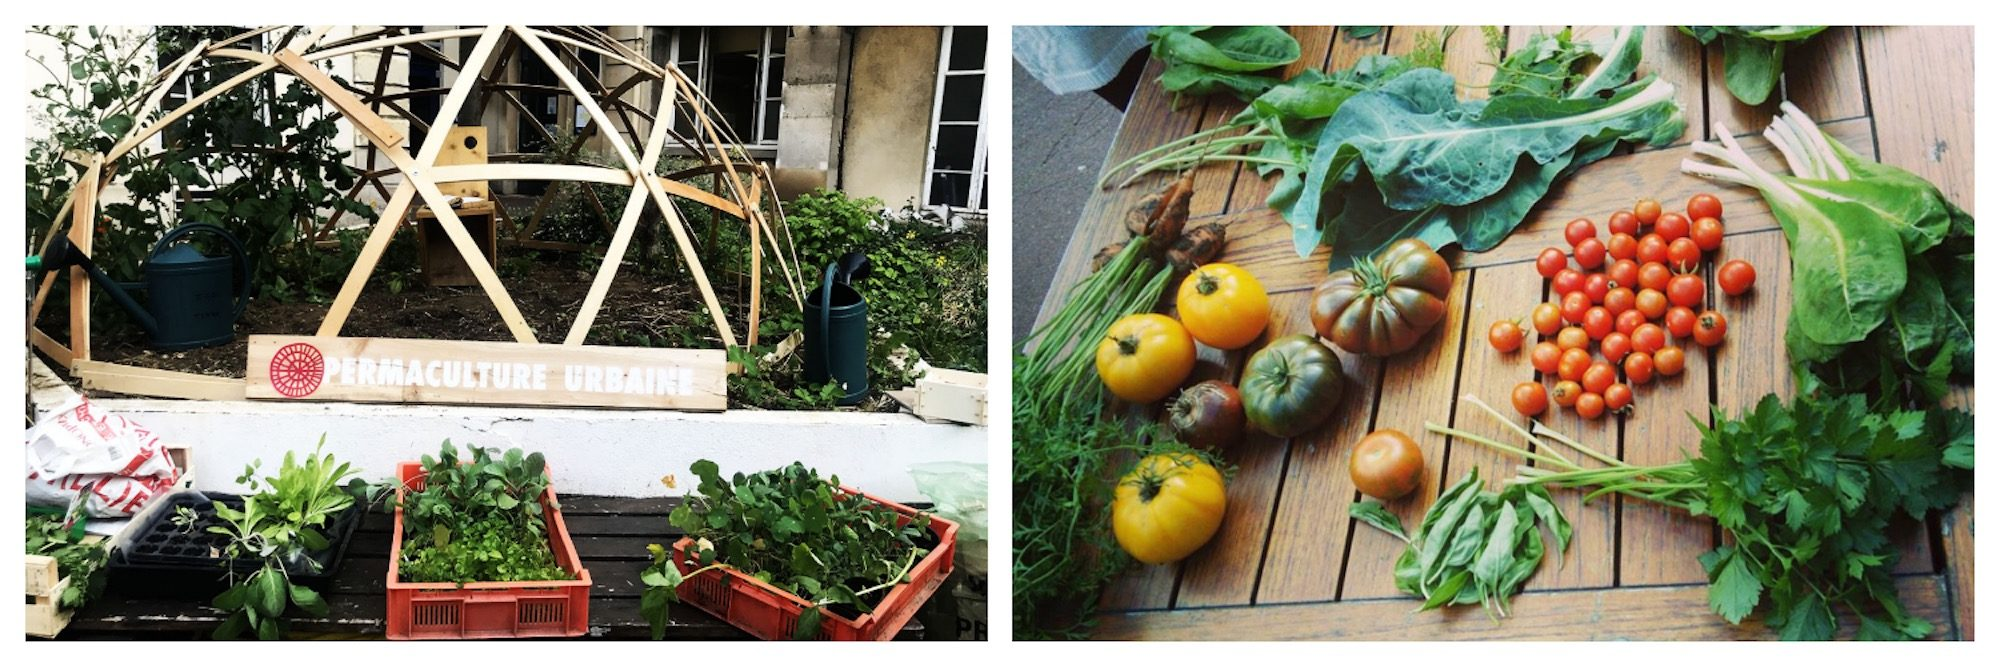 Even if it's winter in Paris, learning how to set up your own urban garden is always a good idea, especially at arty community headquarters Les Grands Voisins.